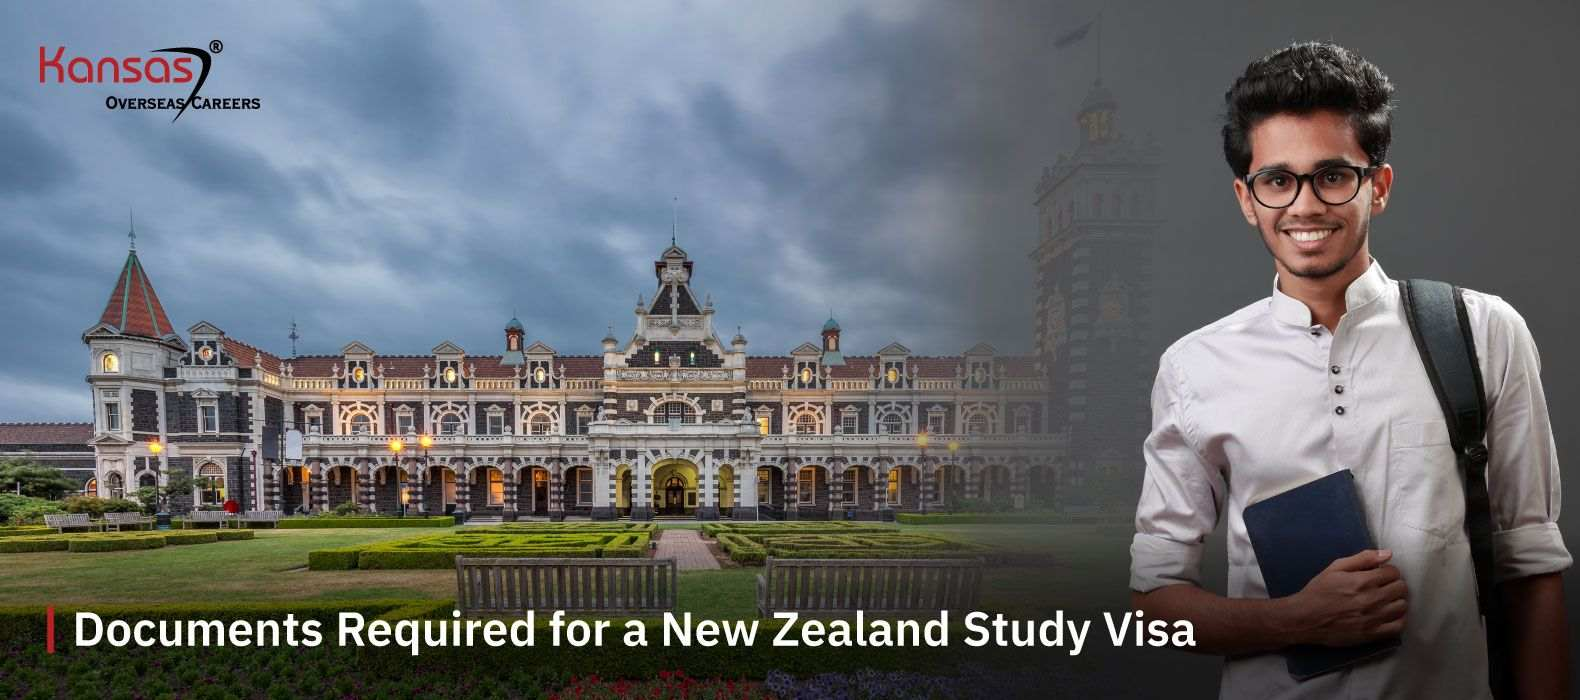 Documents-Required-for-a-New-Zealand-Study-Visa